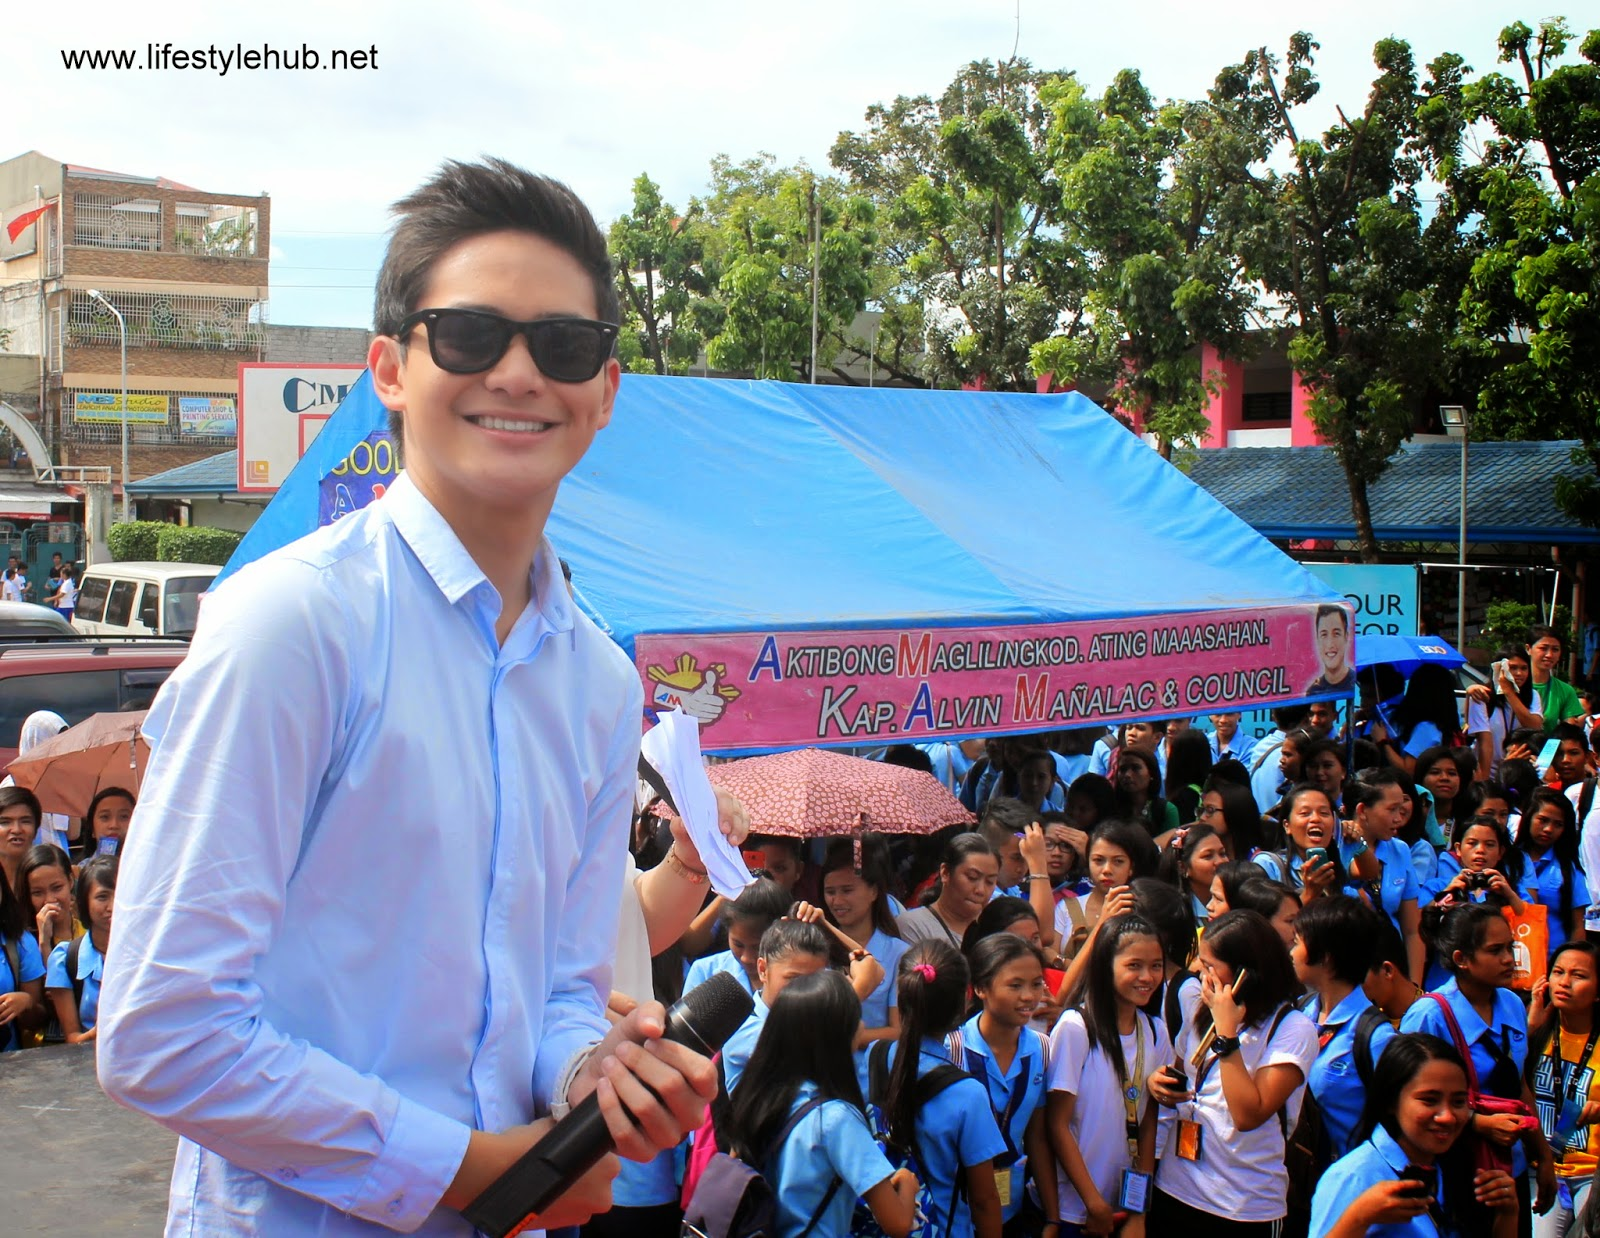 ruru madrid city of malabon university